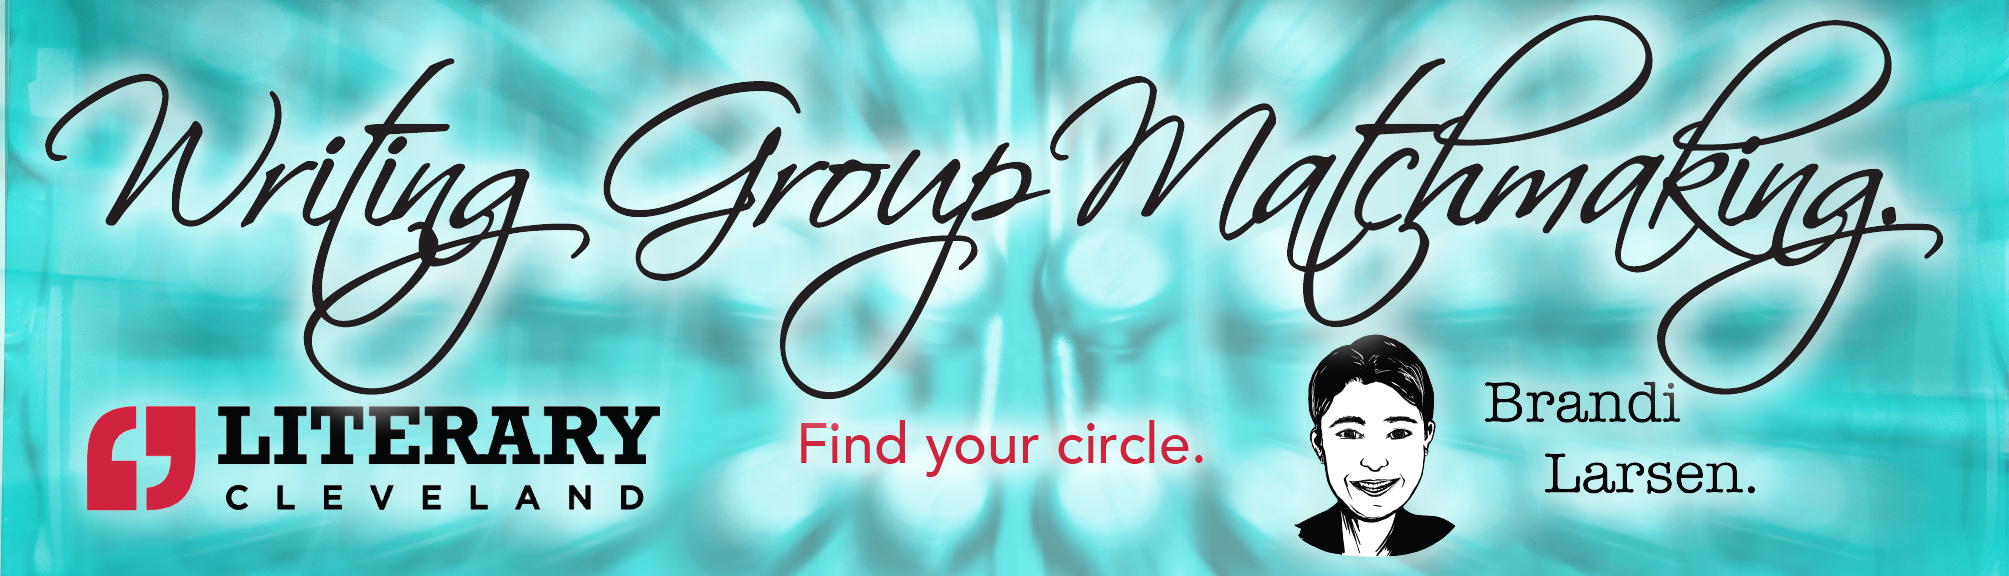 Writing Group Matchmaking Horizontal Banner 4.JPG